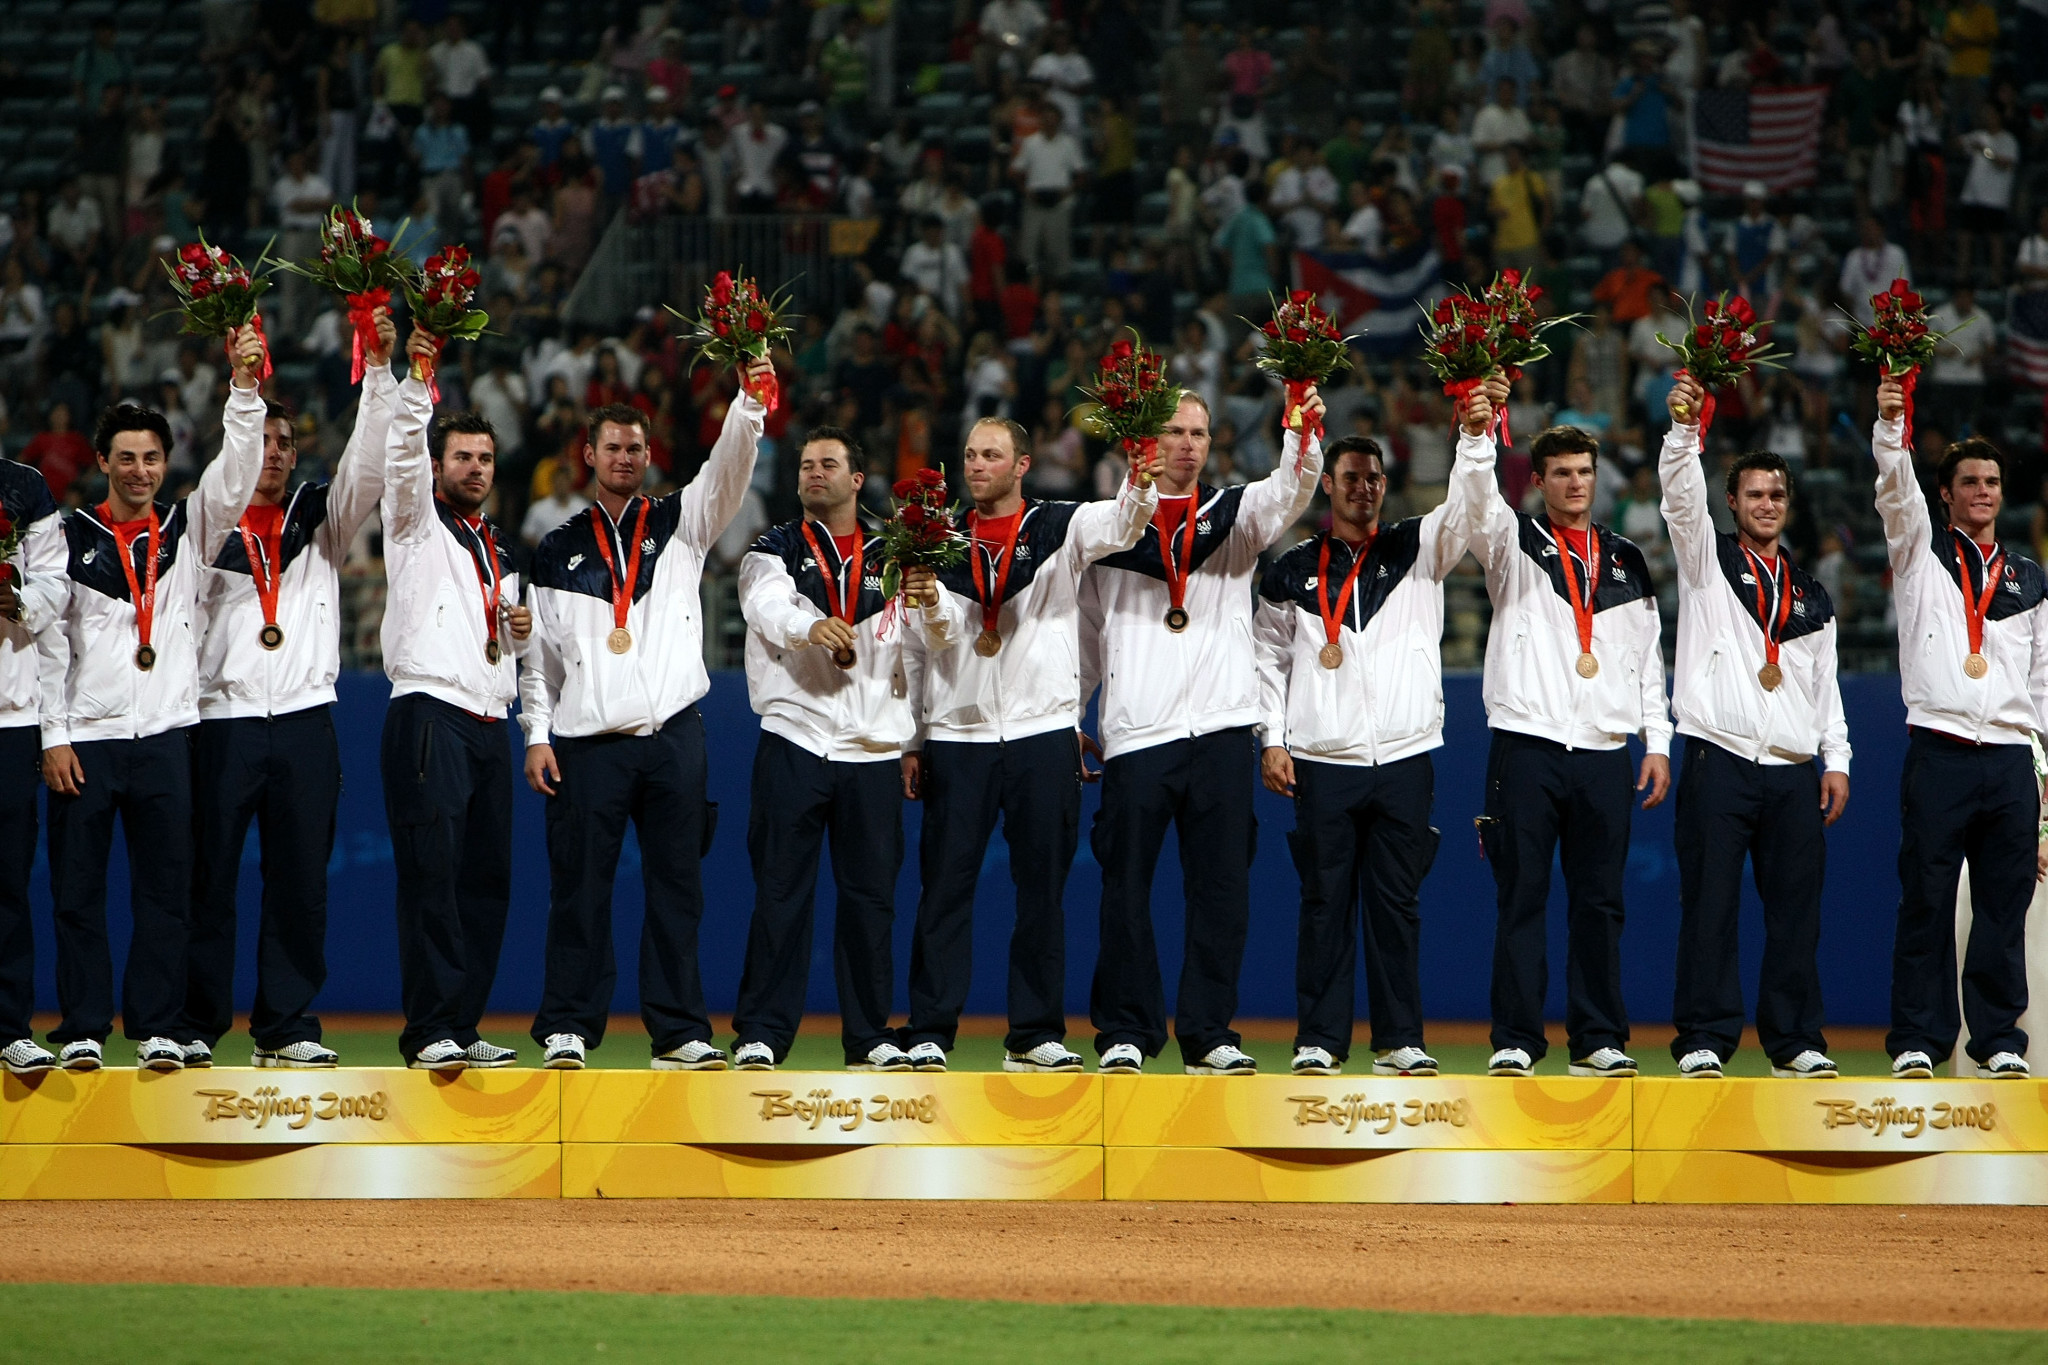 The United States finished with bronze in the baseball competition at the Beijing 2008 Olympics ©Getty Images